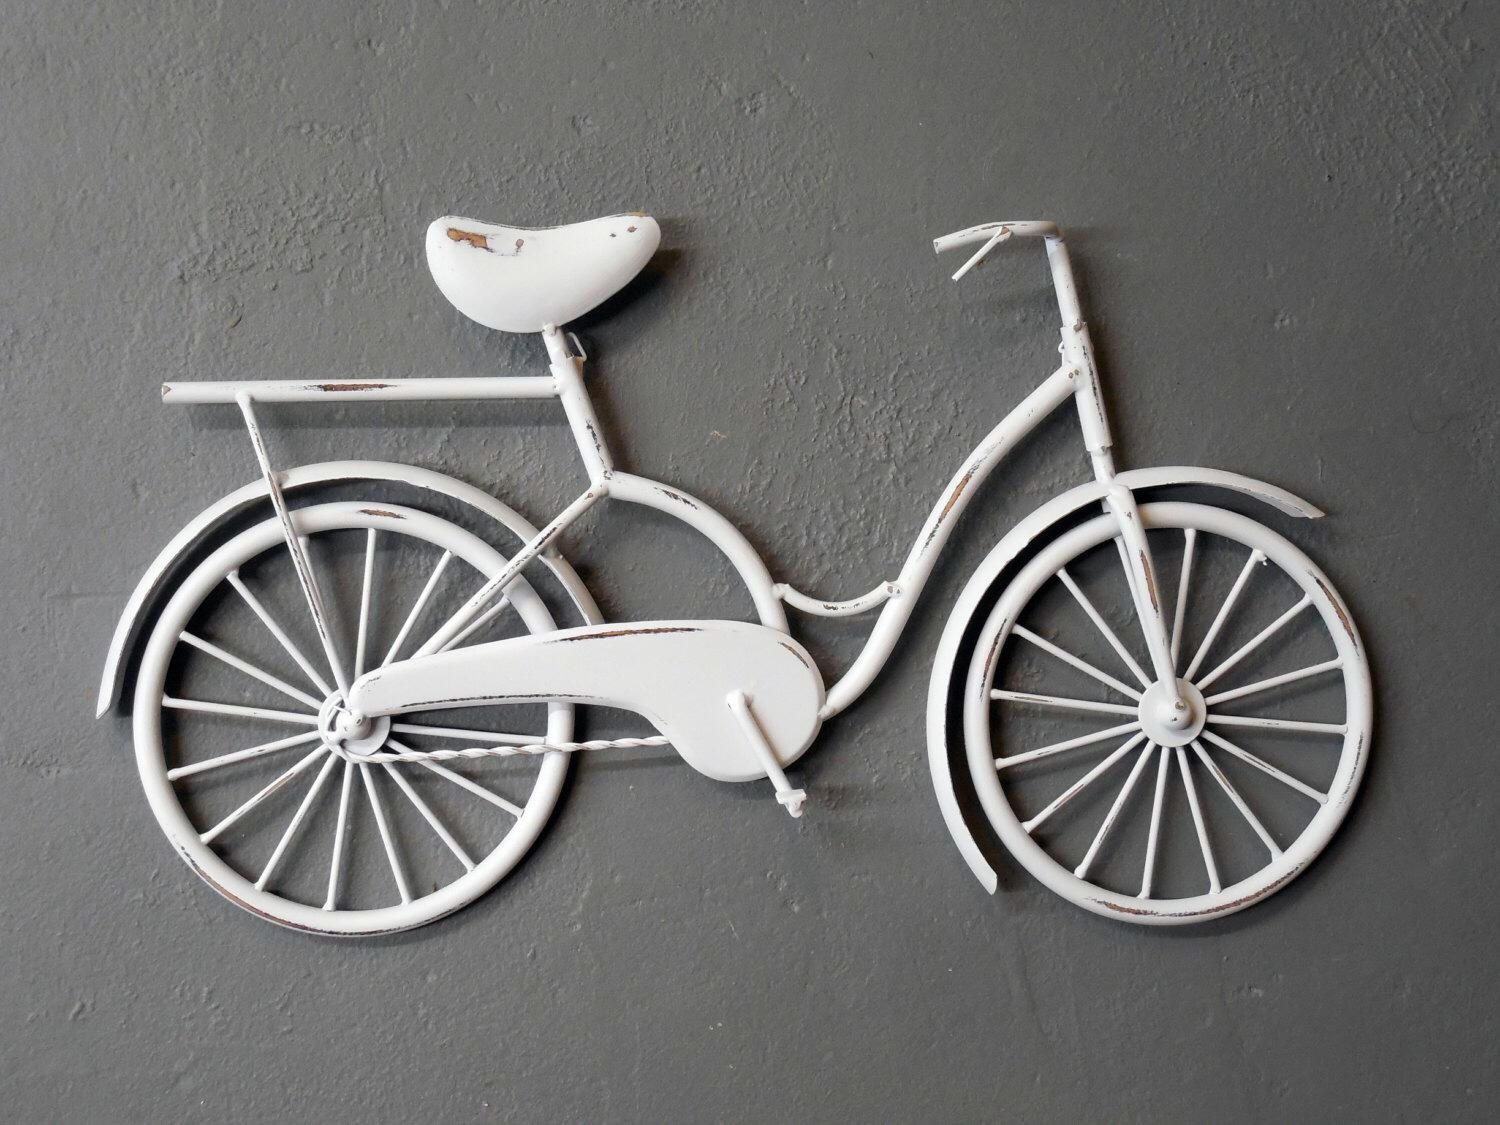 Superb Red Metal Bicycle Wall Art Bike Wheel Furniture For Intended For Metal Bicycle Wall Art (Image 14 of 20)